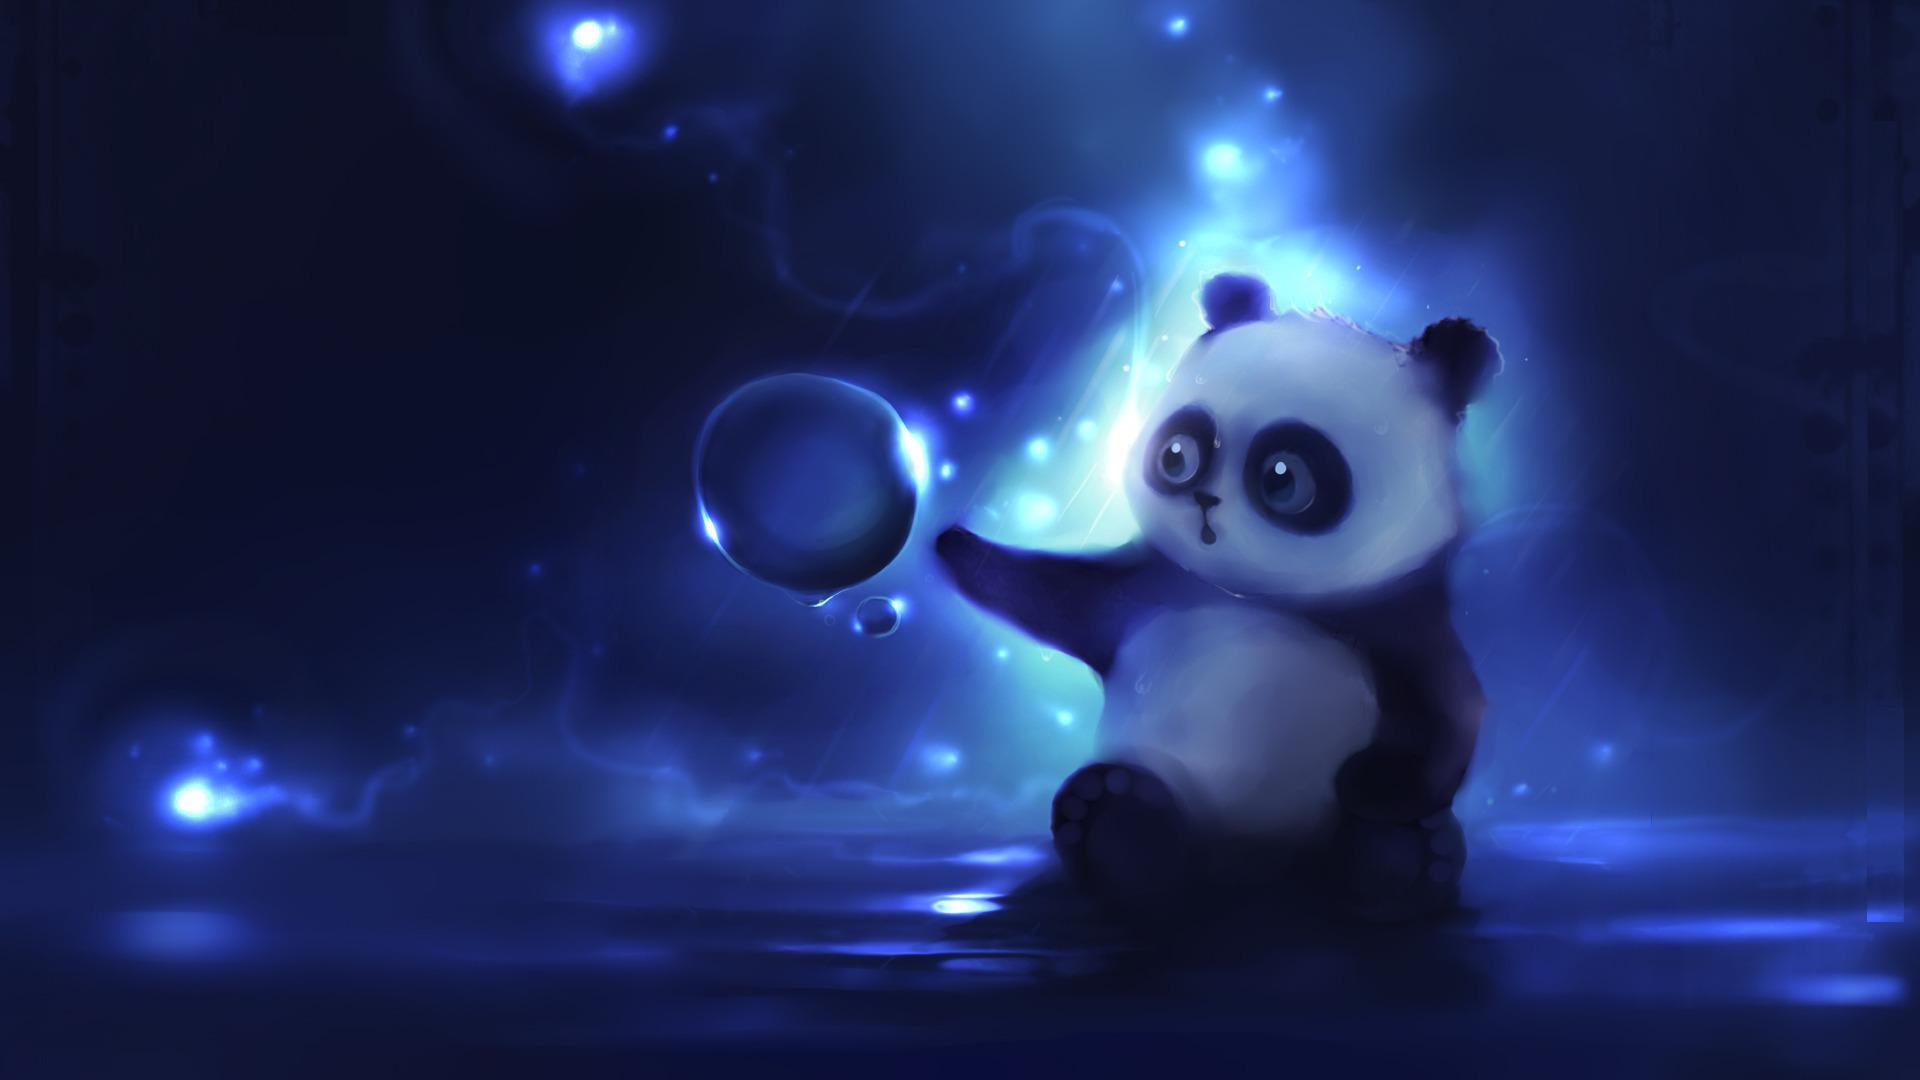 cute animated panda download beautiful animated desktop wallpapers 1920x1080